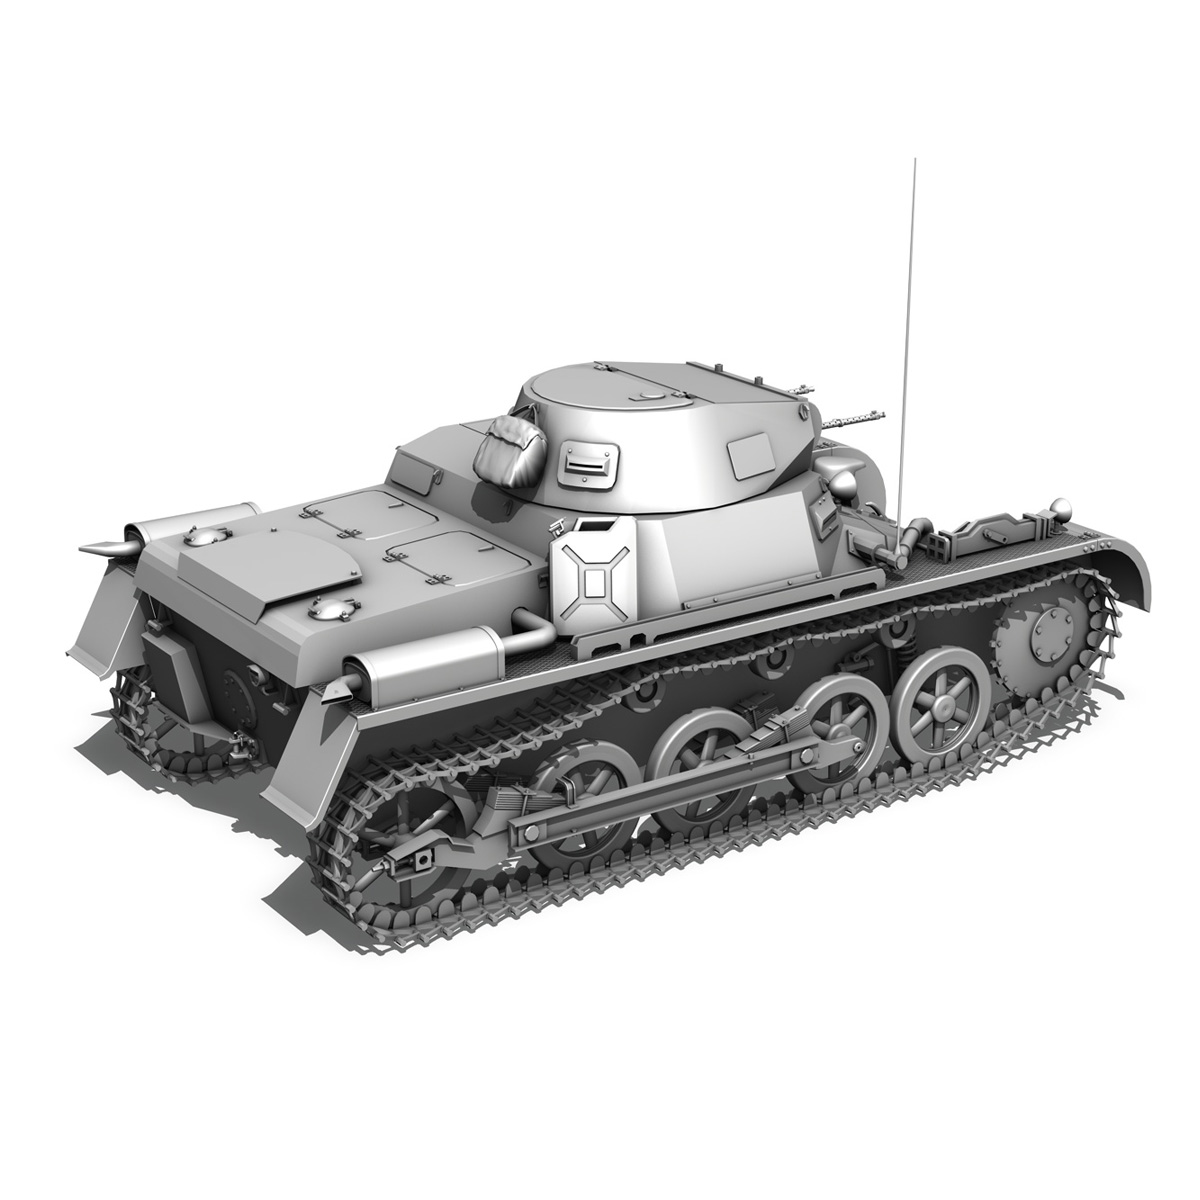 panzerkampfwagen 1 – panzer 1 collection 3d model 3ds fbx c4d lwo obj 189344